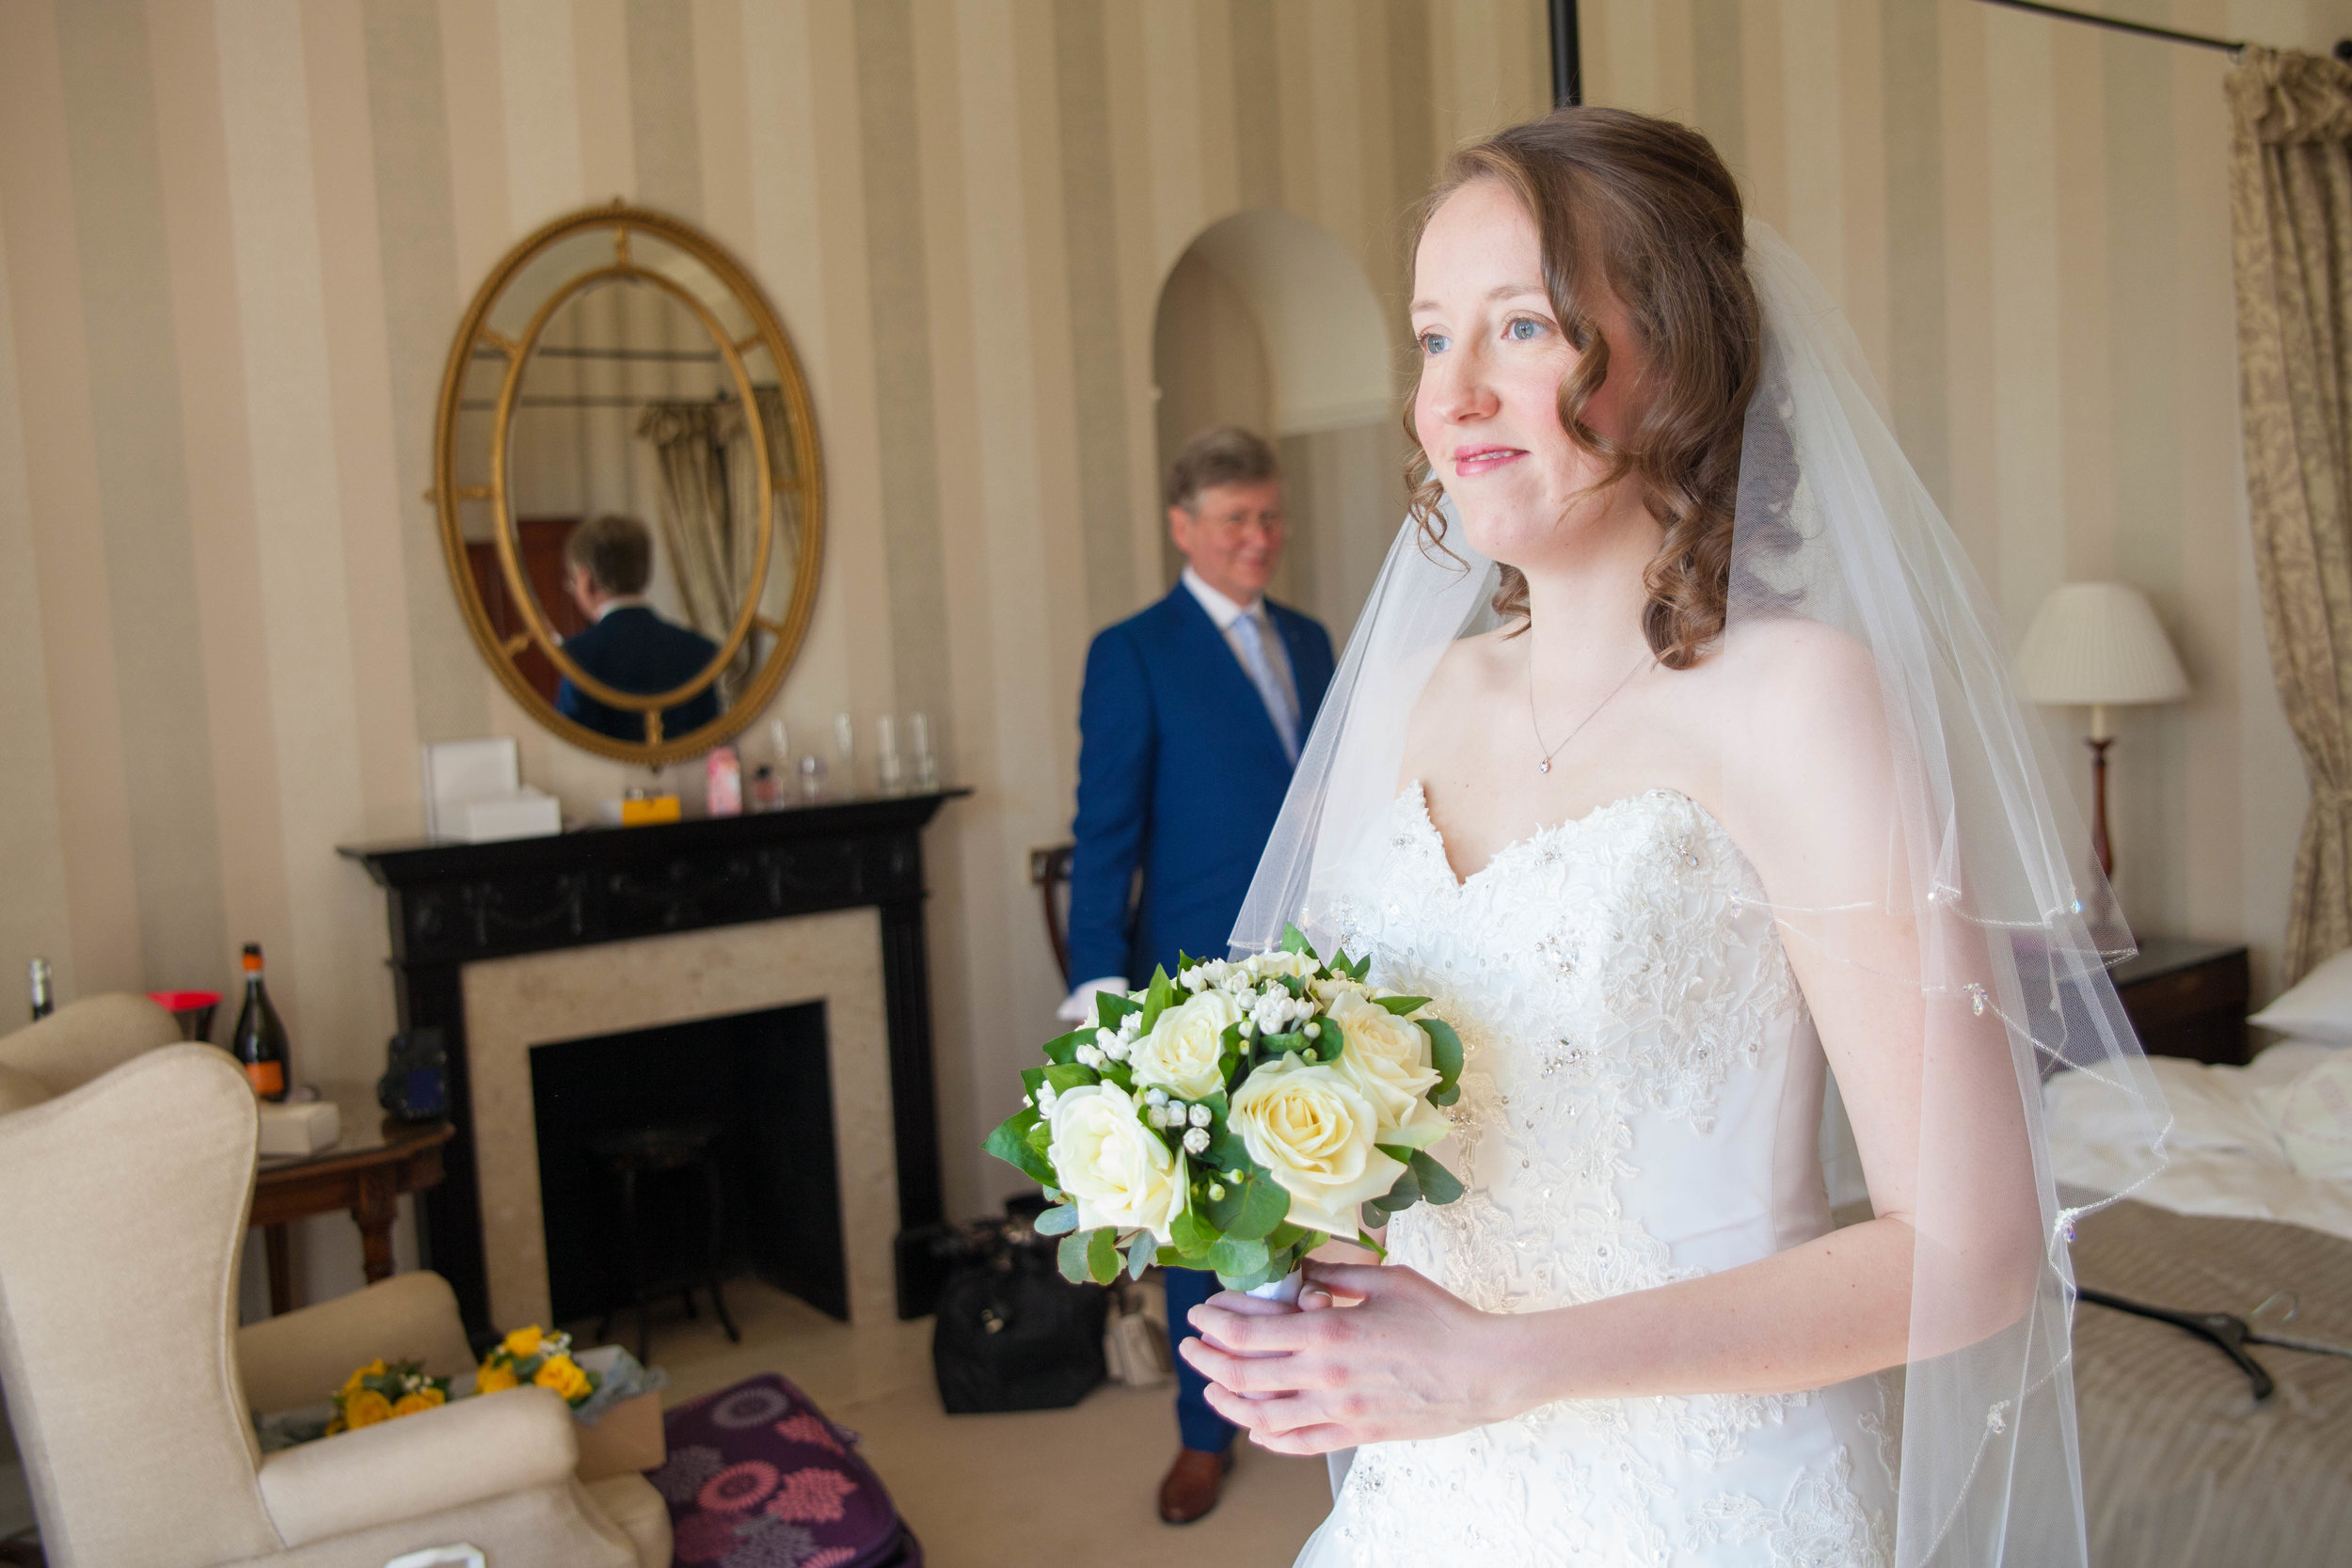 NLPhotography_Taplow_House-Wedding_Photographer_Emily&Alan_C-211.jpg